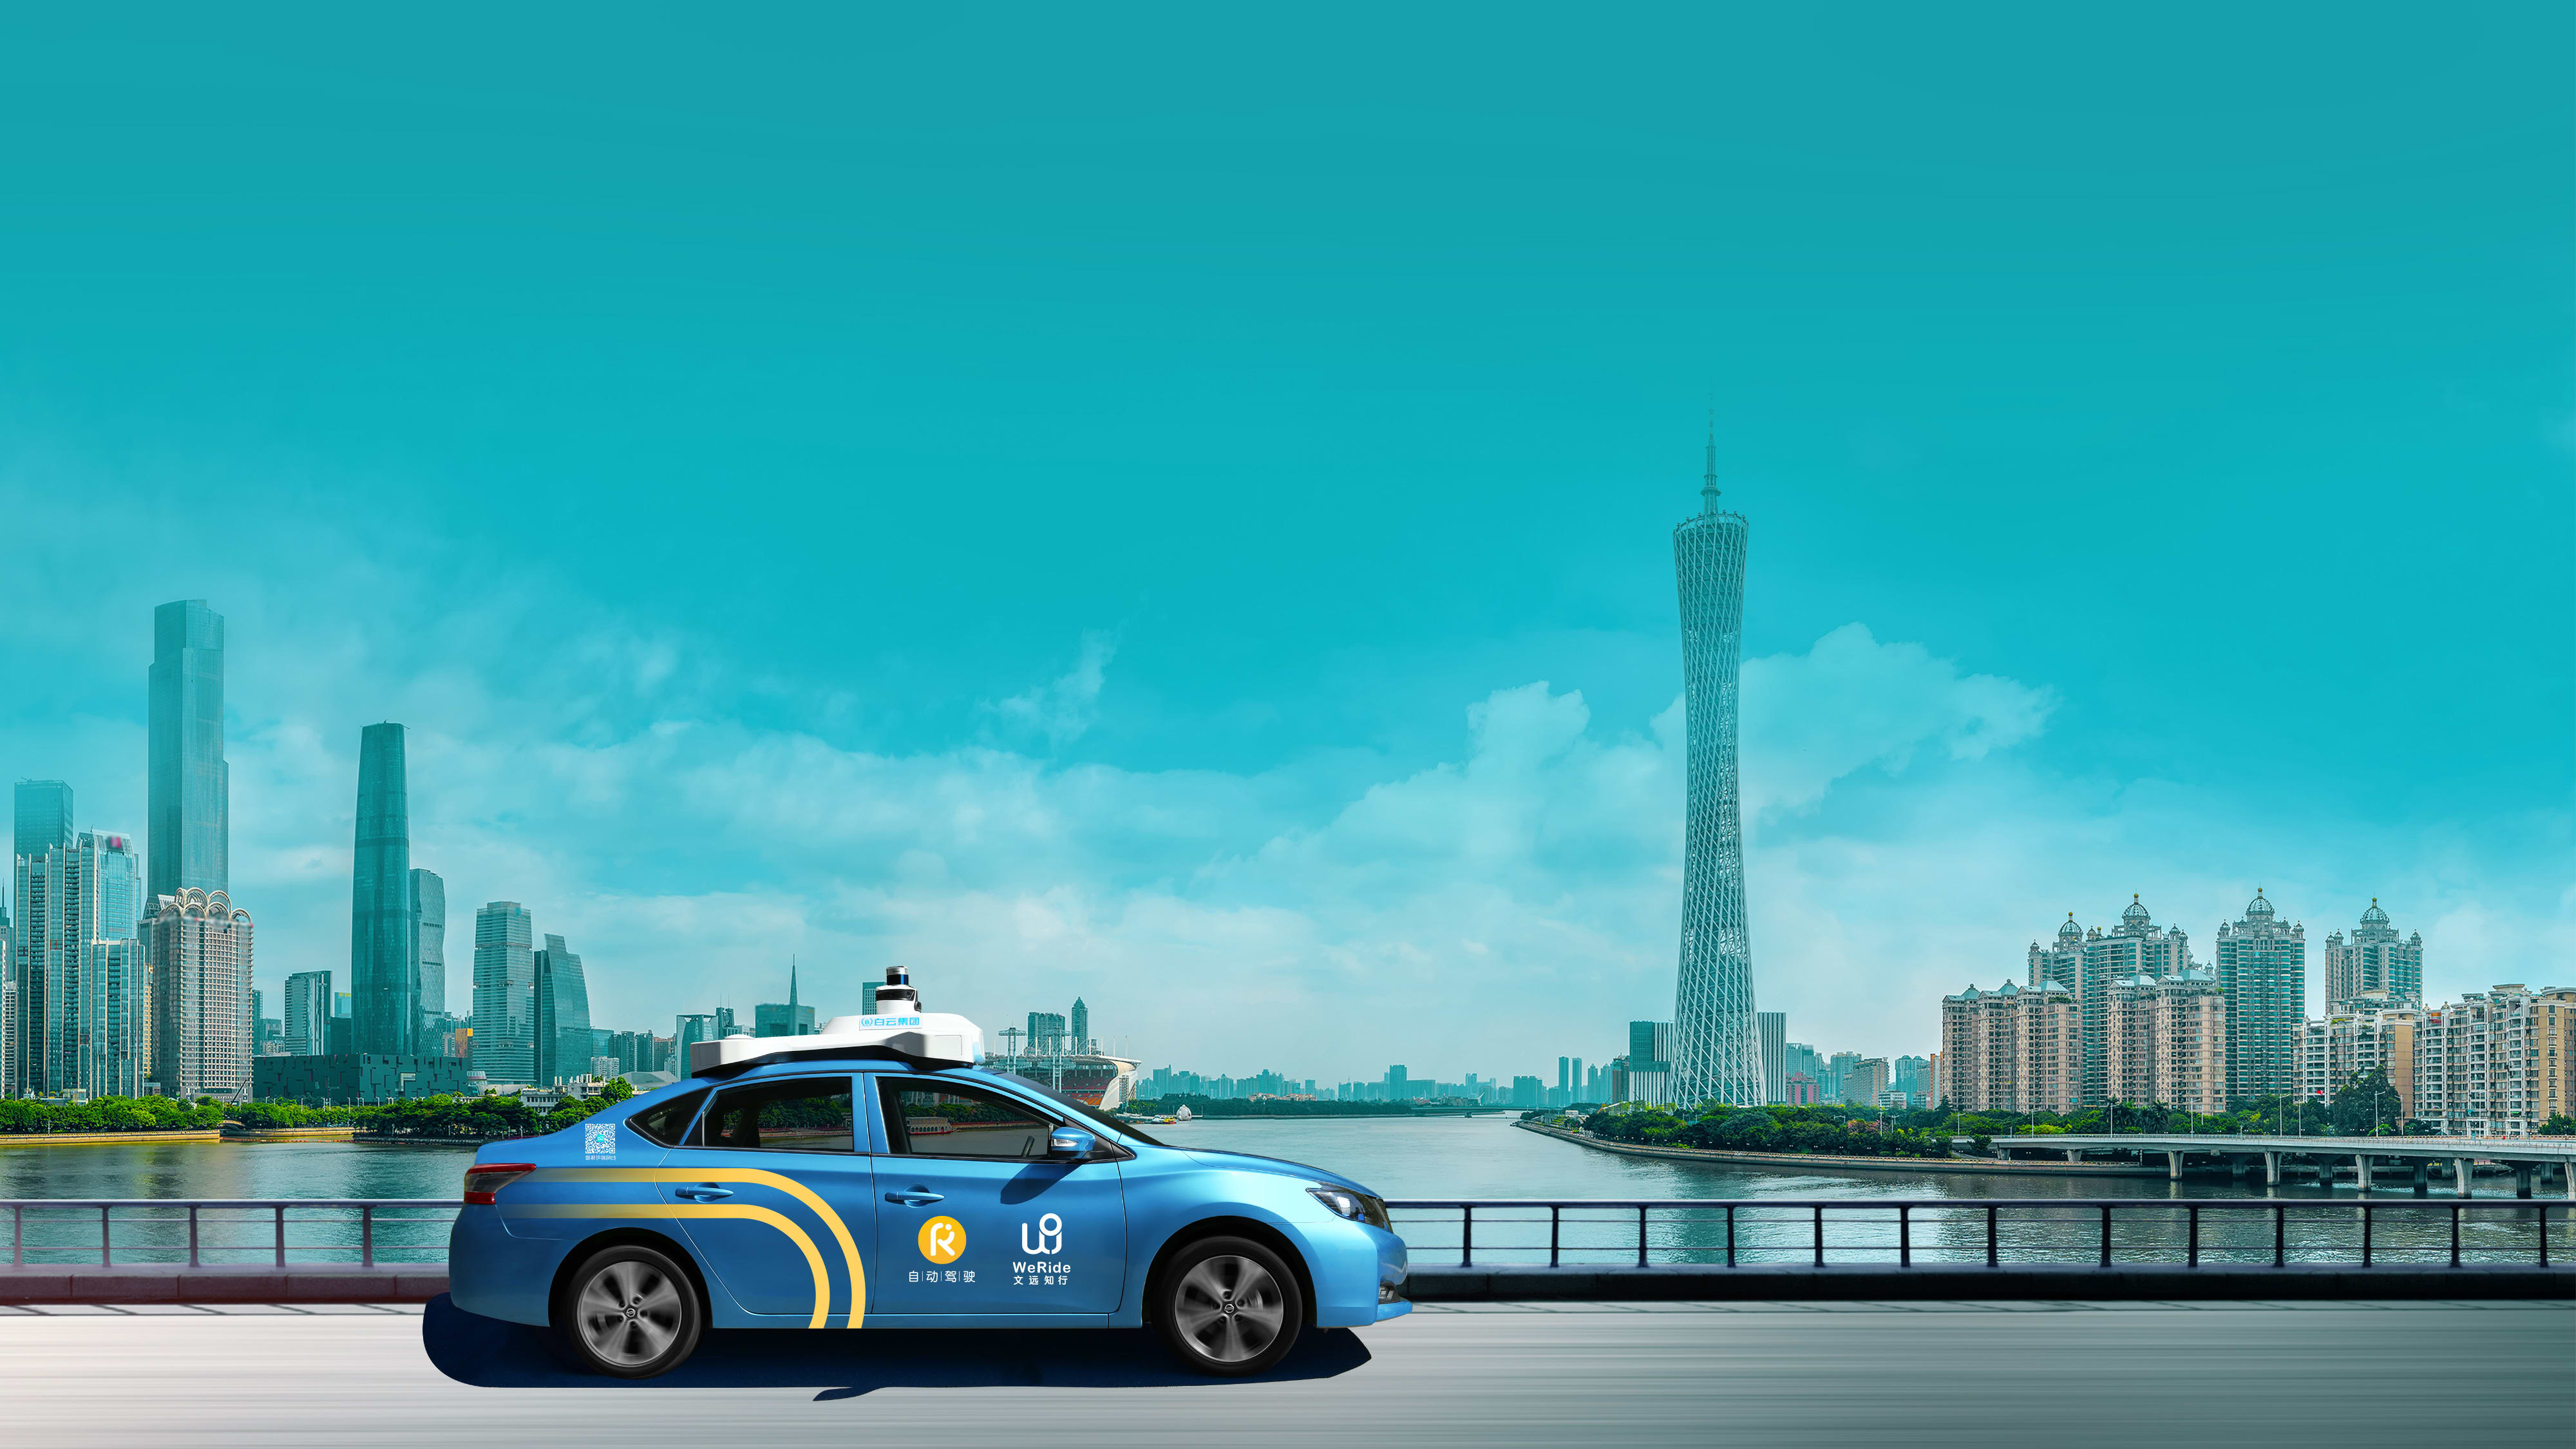 Chinese driverless car startup WeRide raises $310M led by commercial vehicle manufacturer Yutong Group (Arjun Kharpal/CNBC)